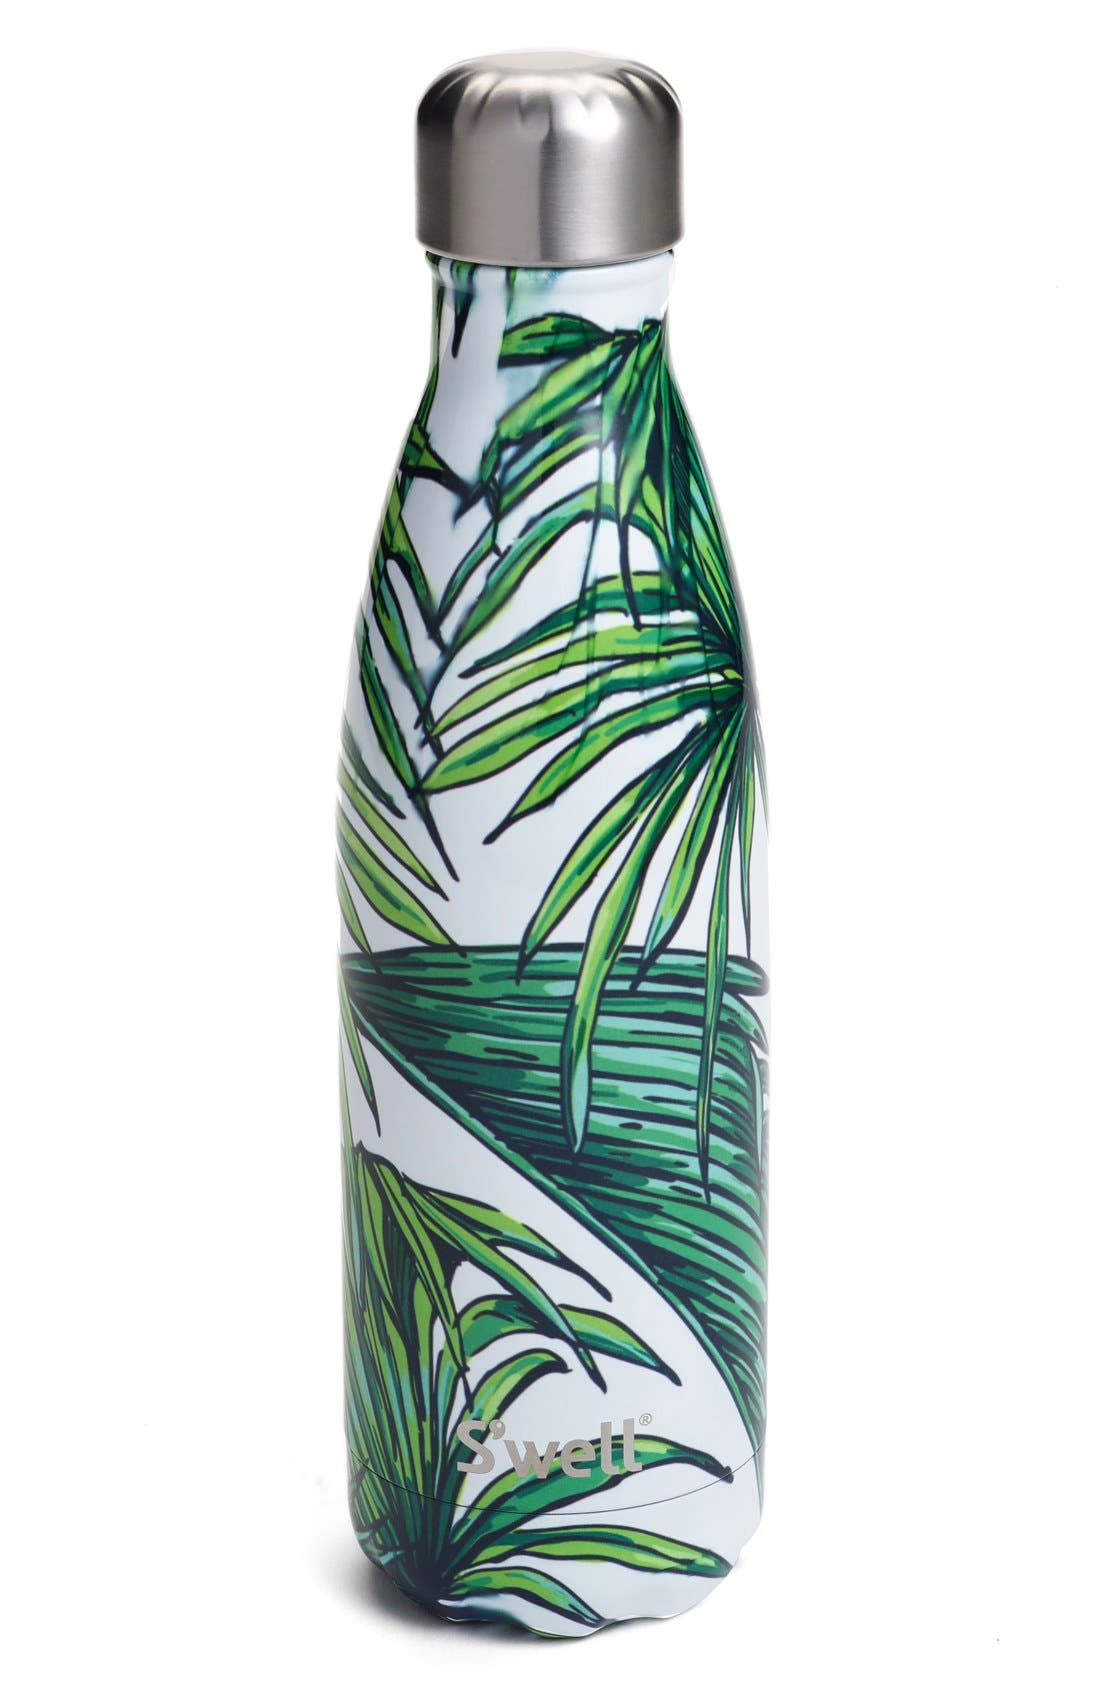 Main Image - S'well 'Waikiki' Stainless Steel Water Bottle